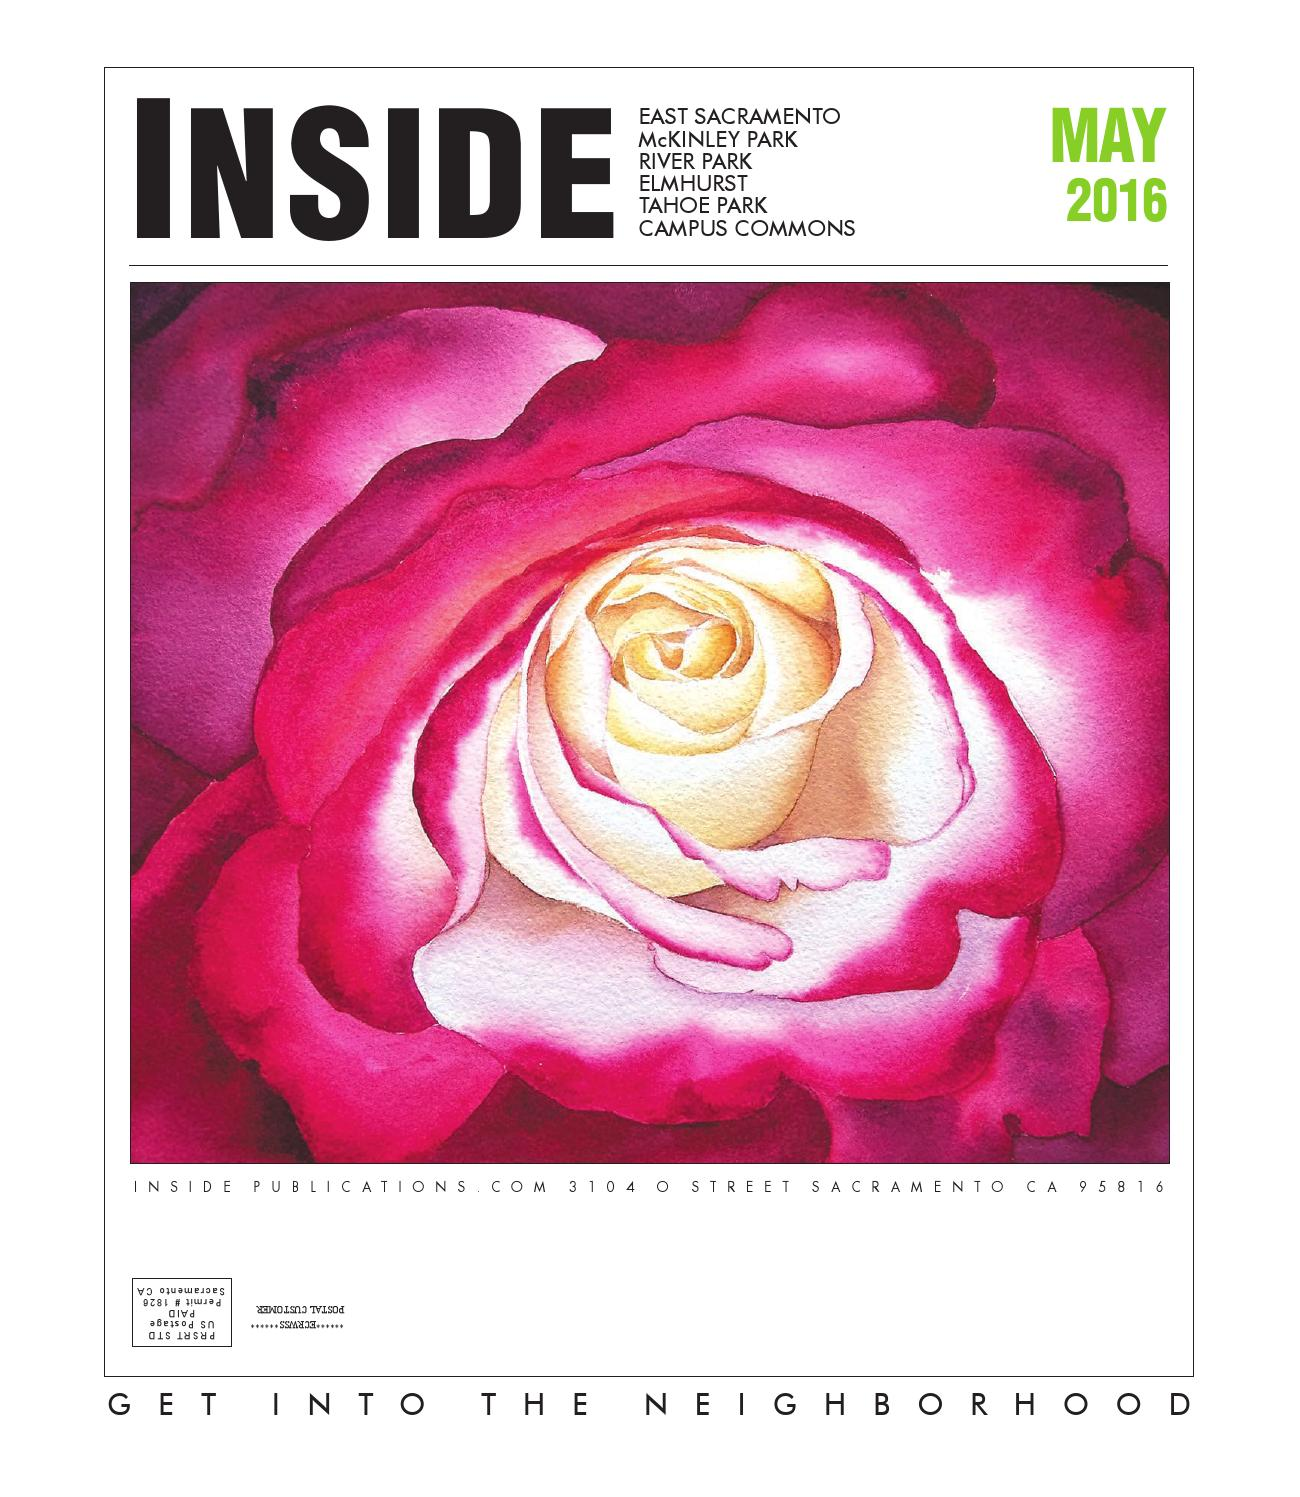 Inside east sacramento may 2016 by Inside Publications issuu